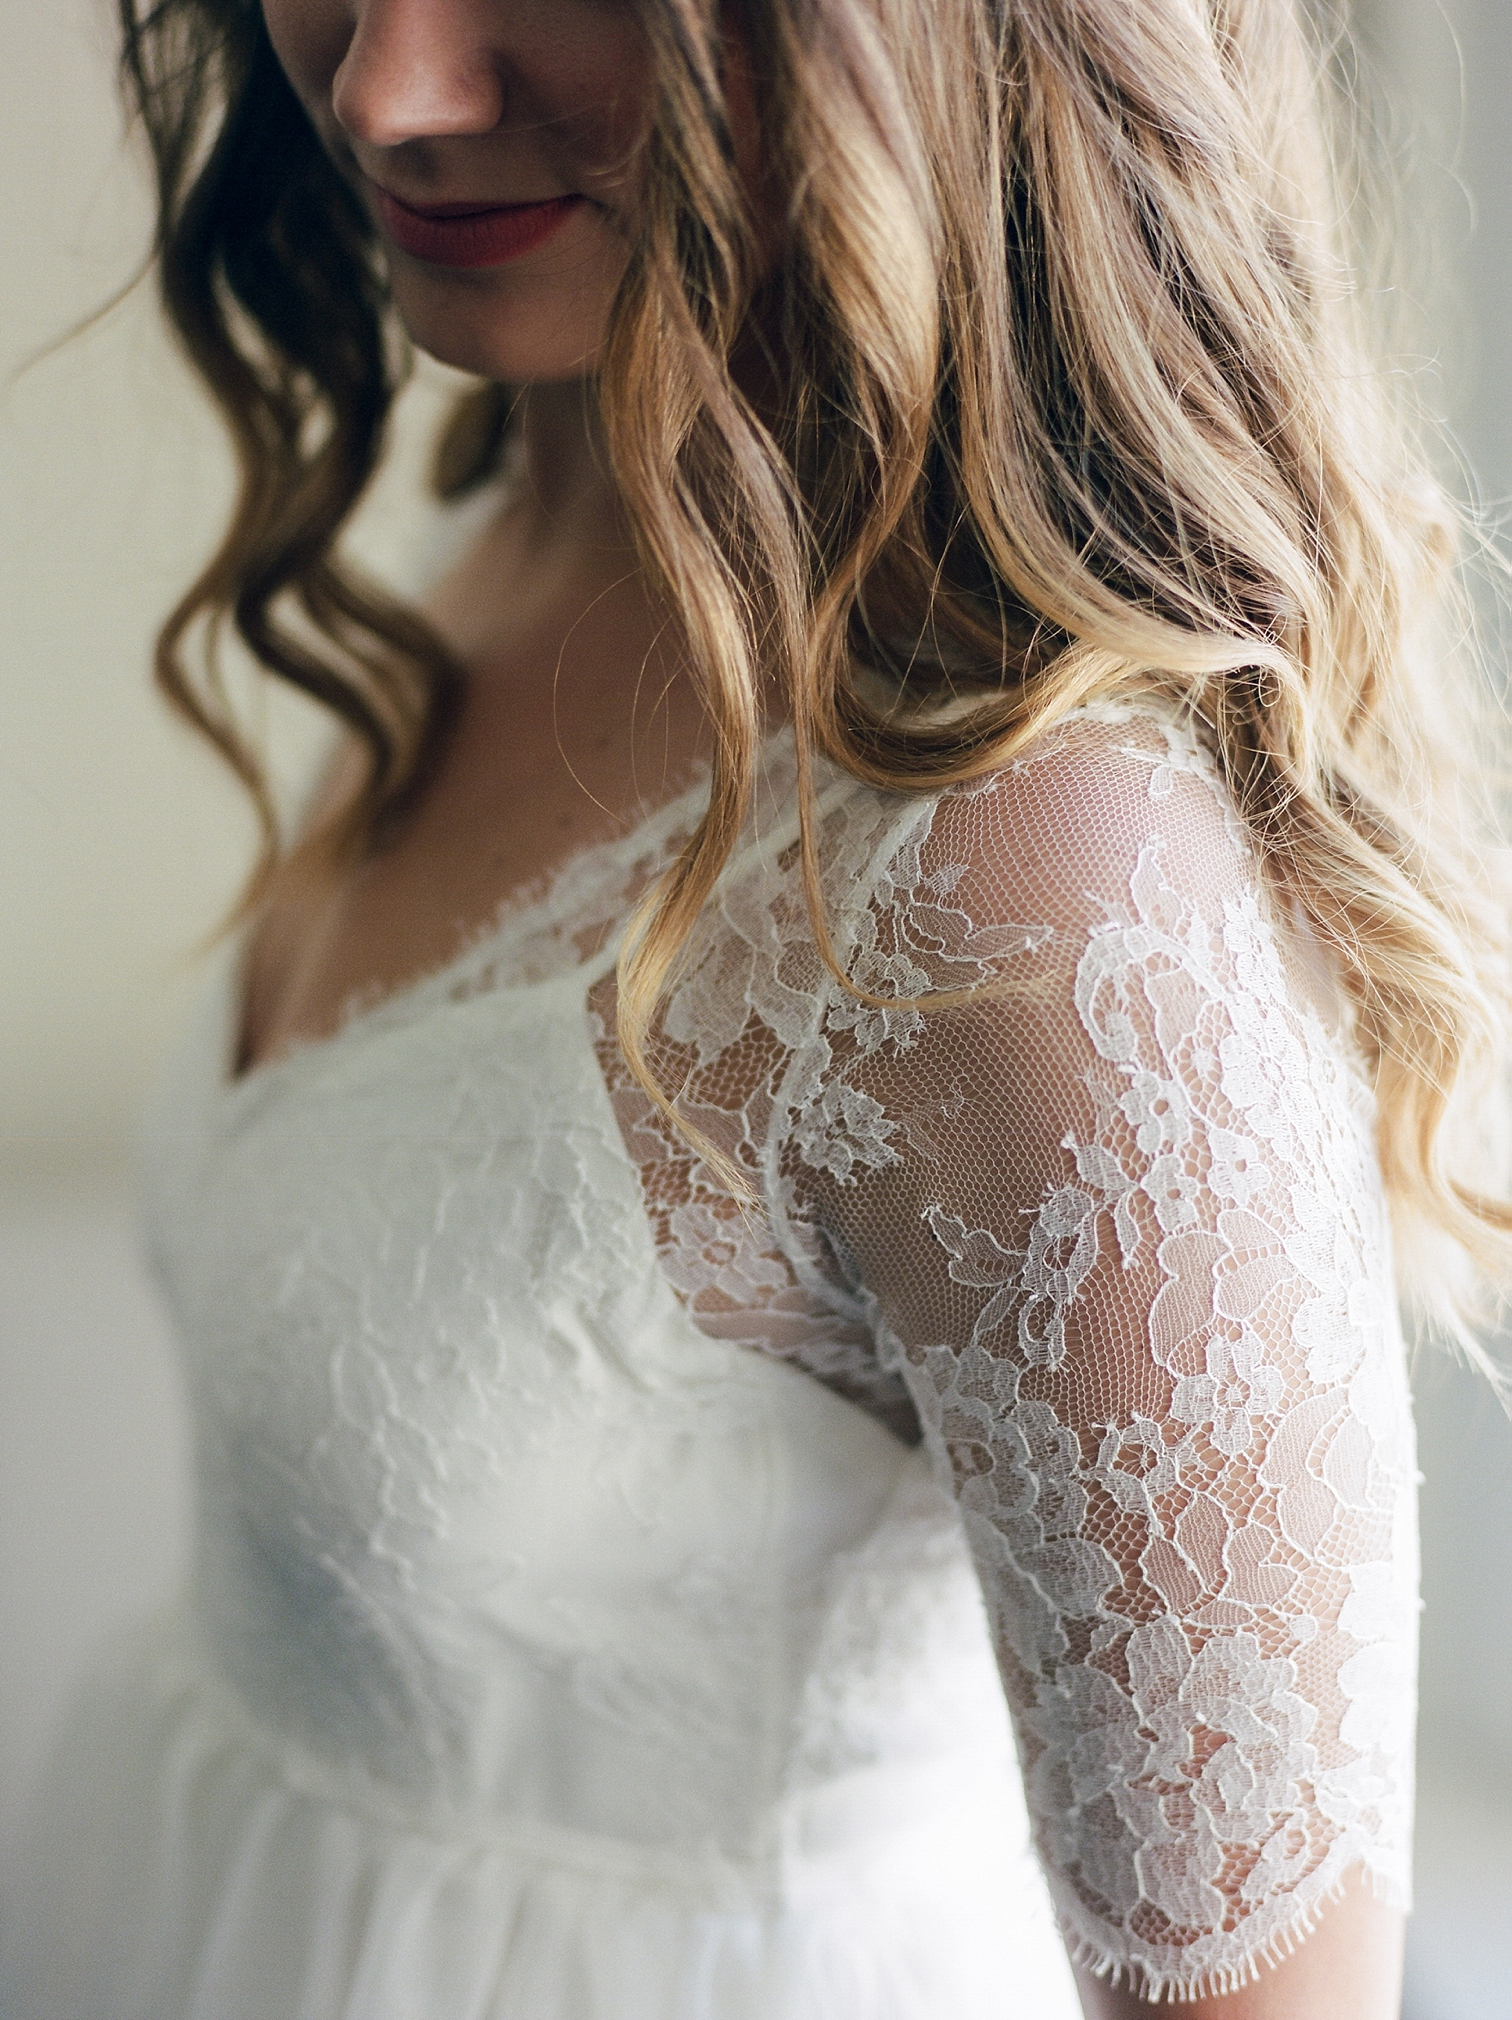 Sarah Seven Wedding Dress, Bridal Portraits, Colorado Photographers, Best Destination Weddings, Danielle DeFiore Photography